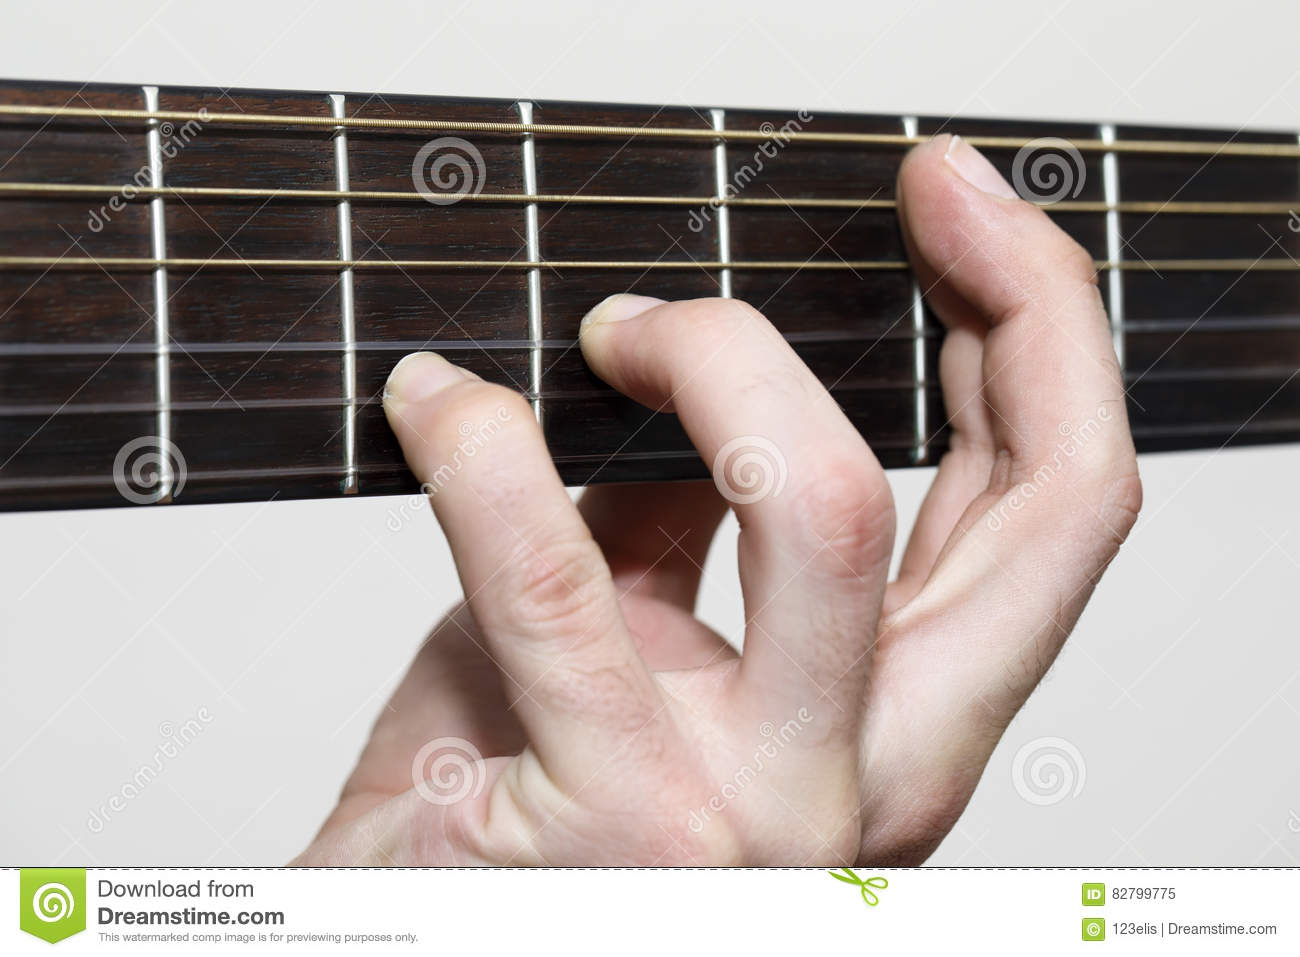 Guitar Chords Stock Photo - Image: 82799775